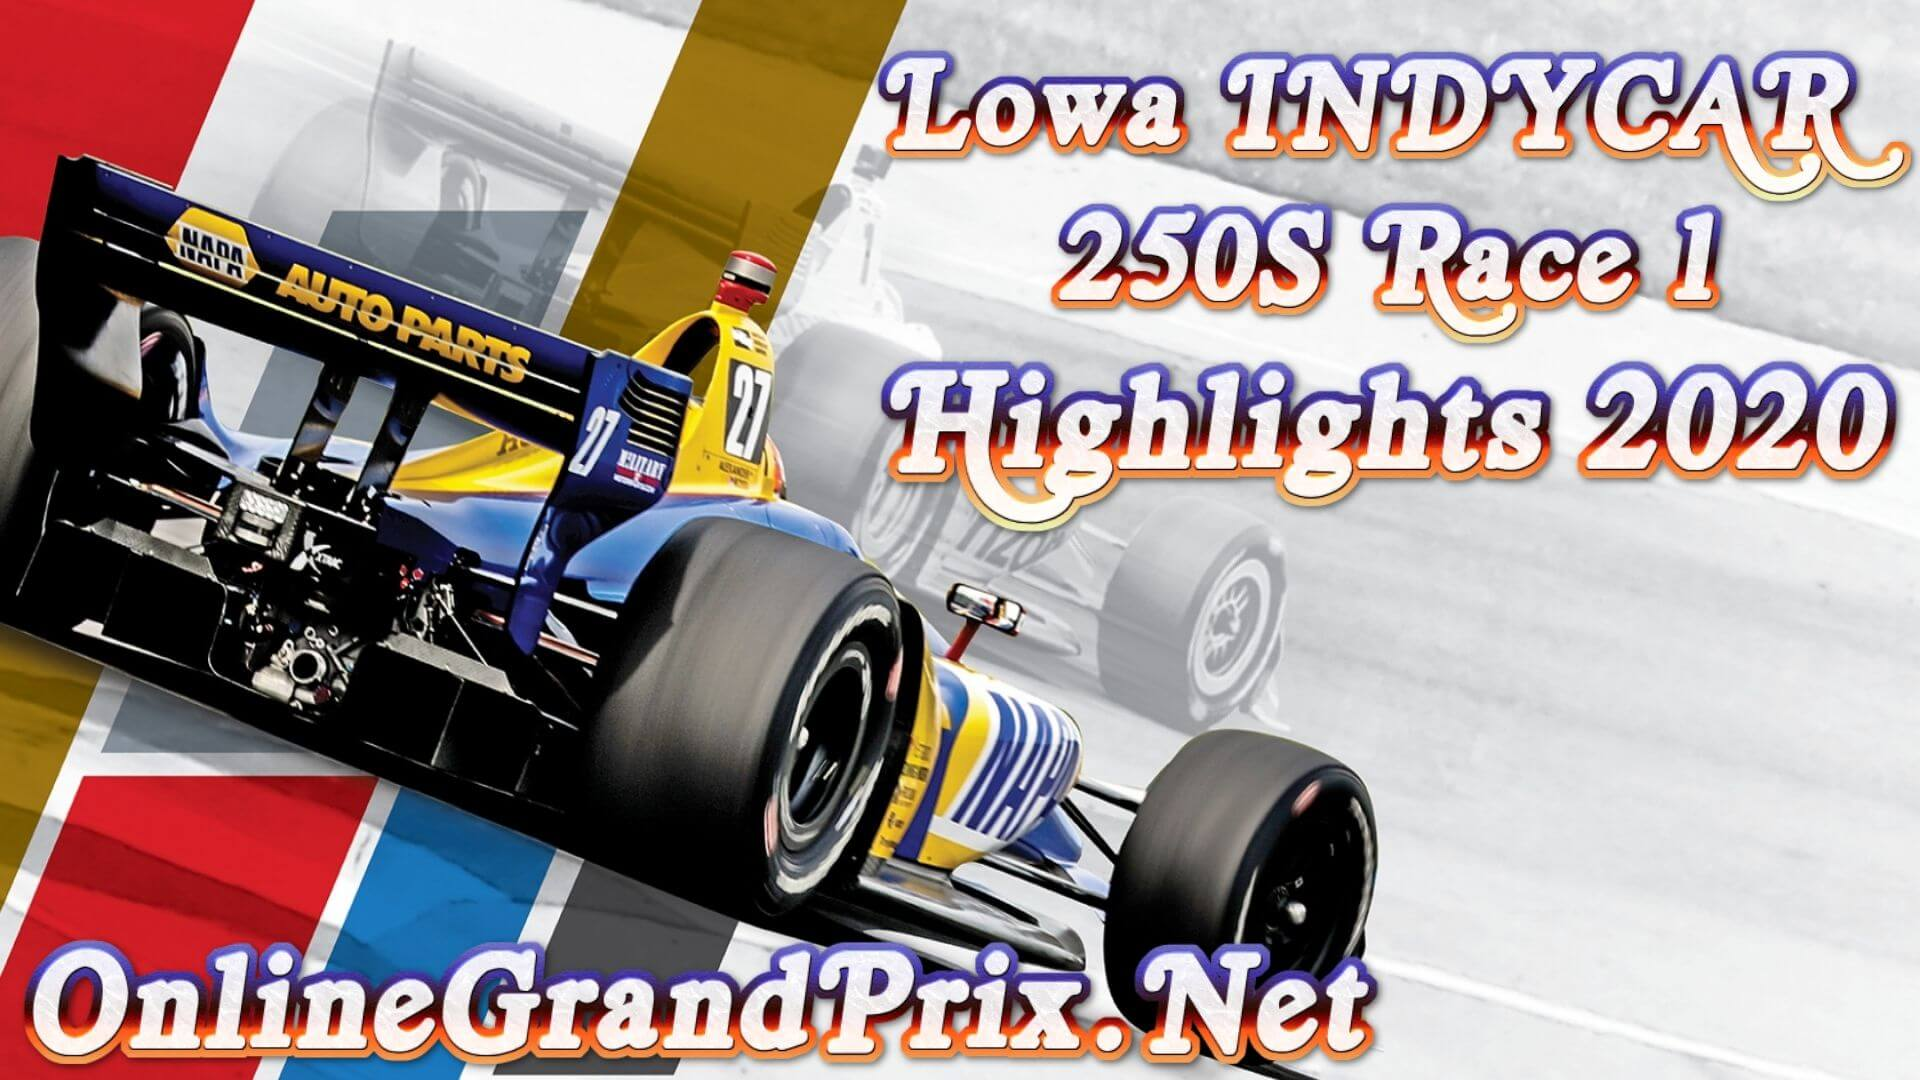 lowa Indycar 250S Race 1 Highlights INDYCAR 2020